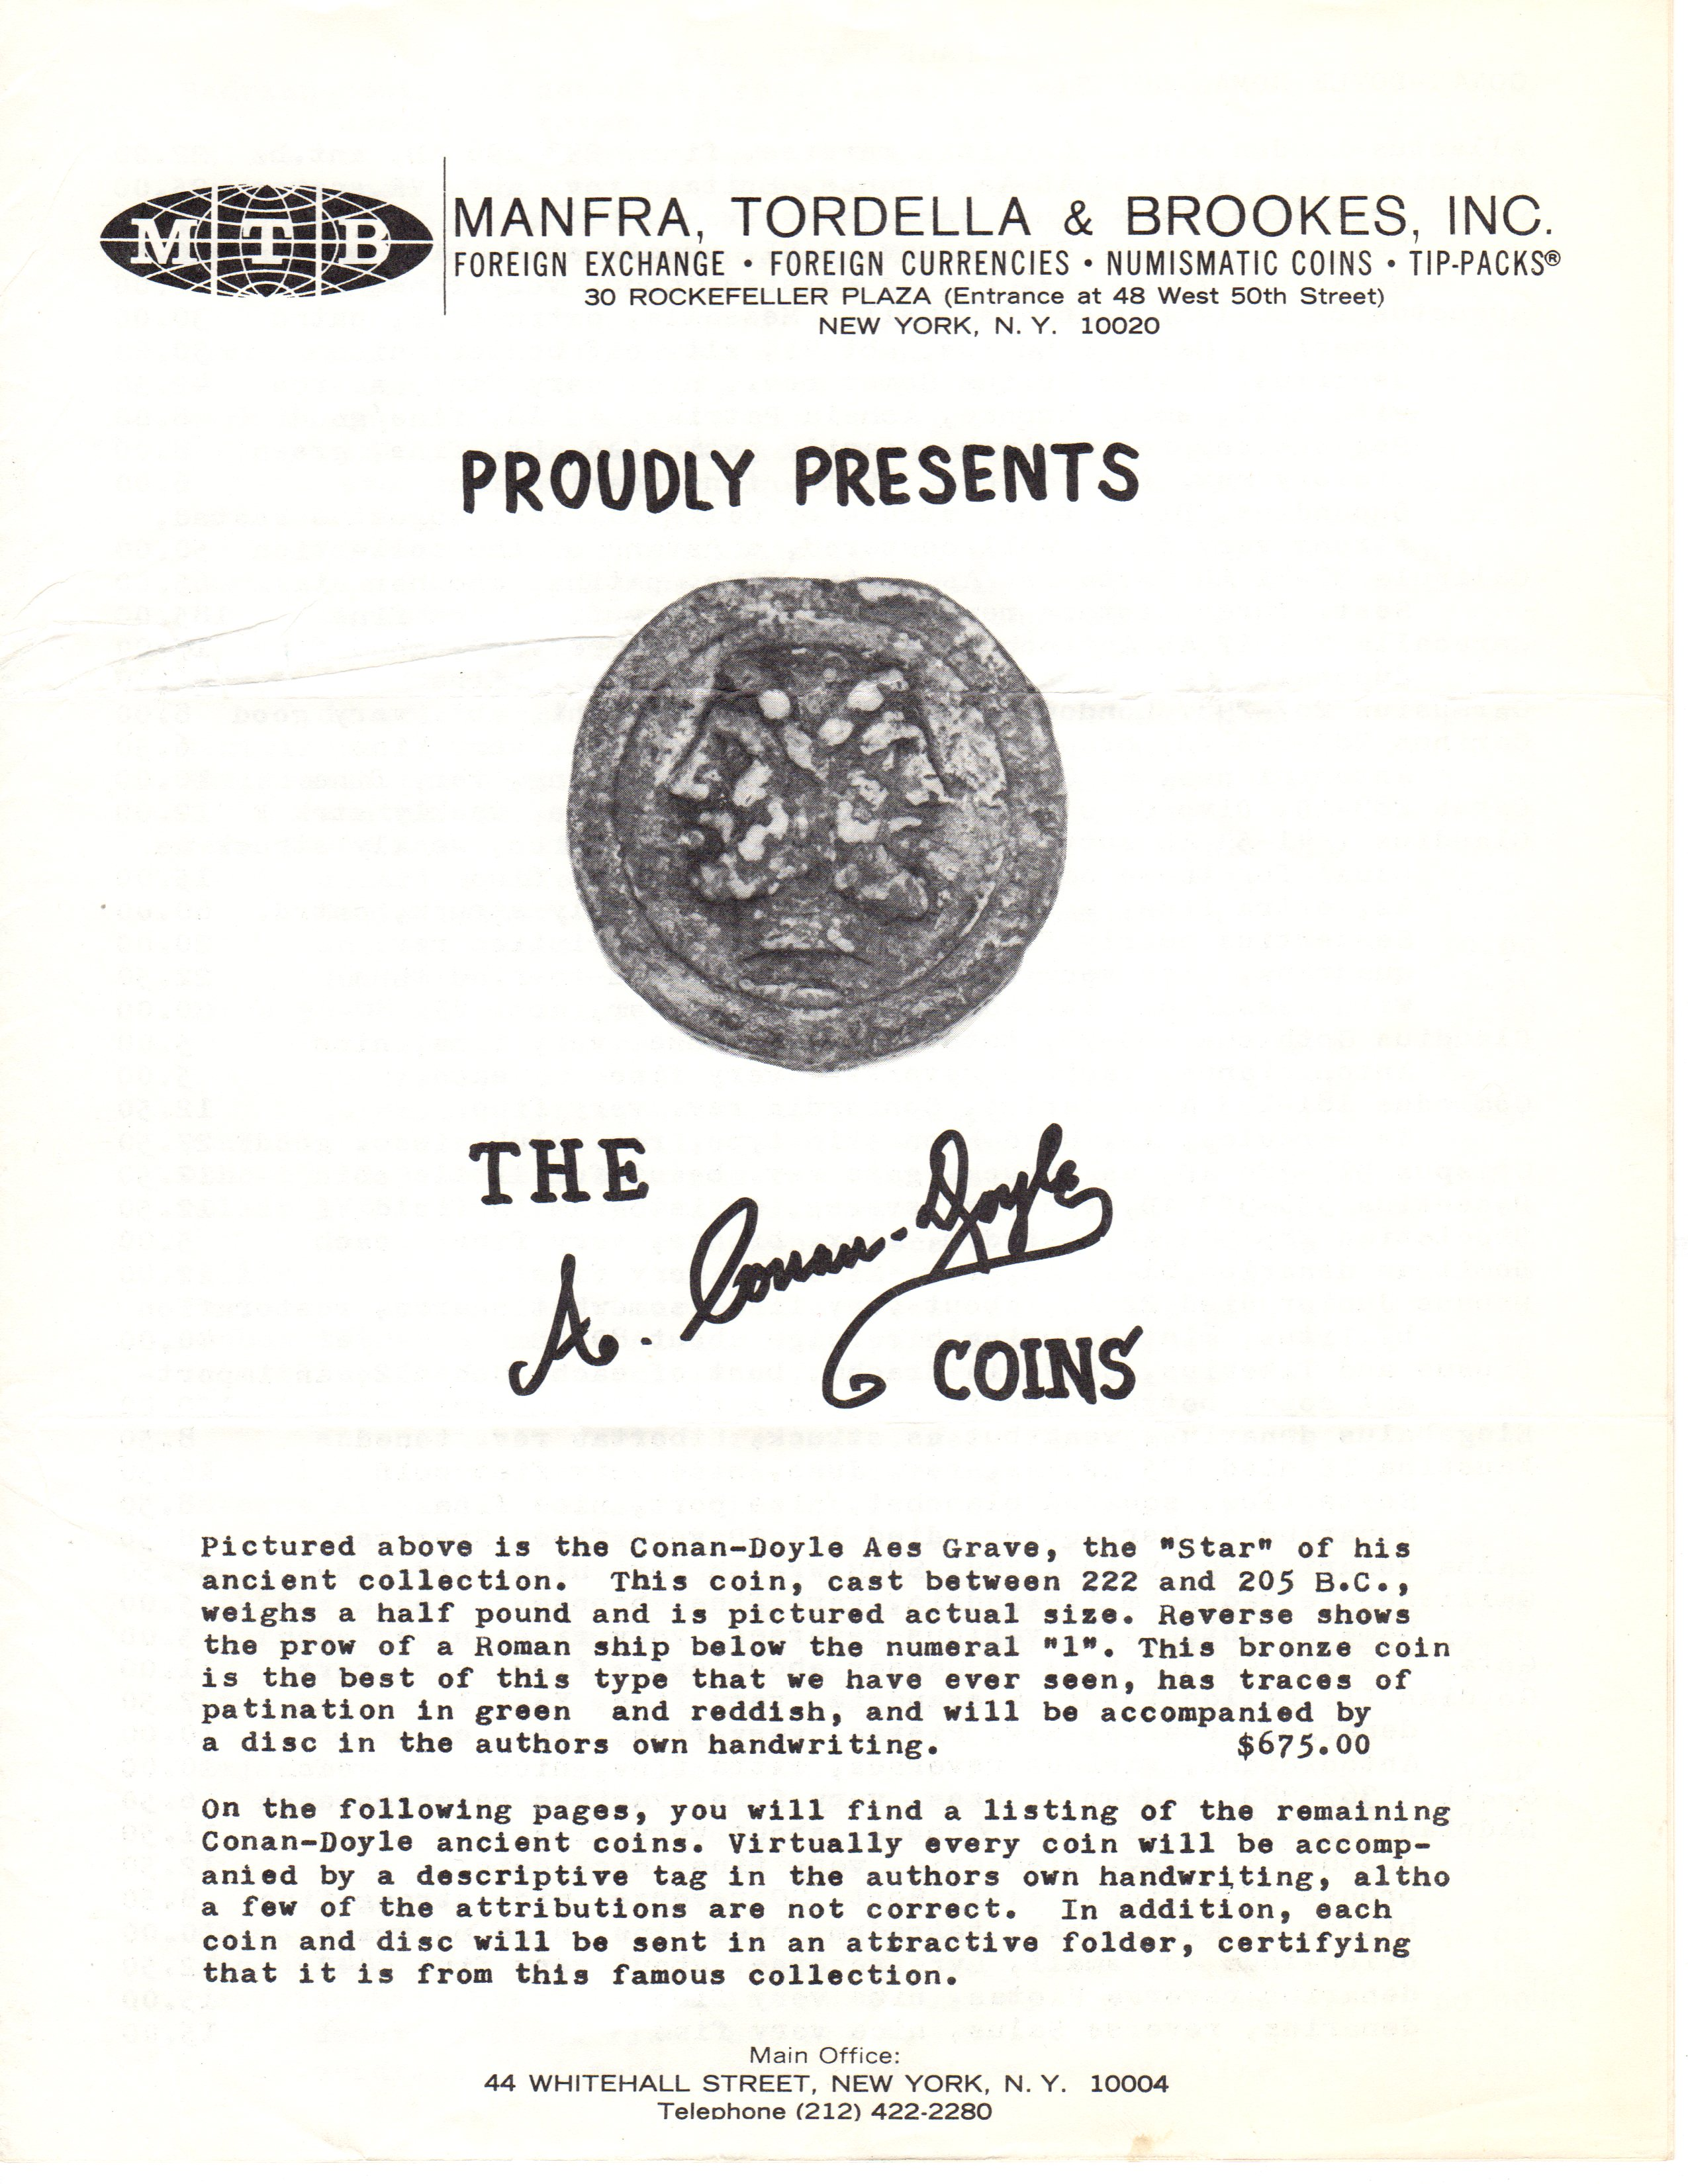 MTB's 1968 Price List of Arthur Conan Doyle's Ancient Coin Collection